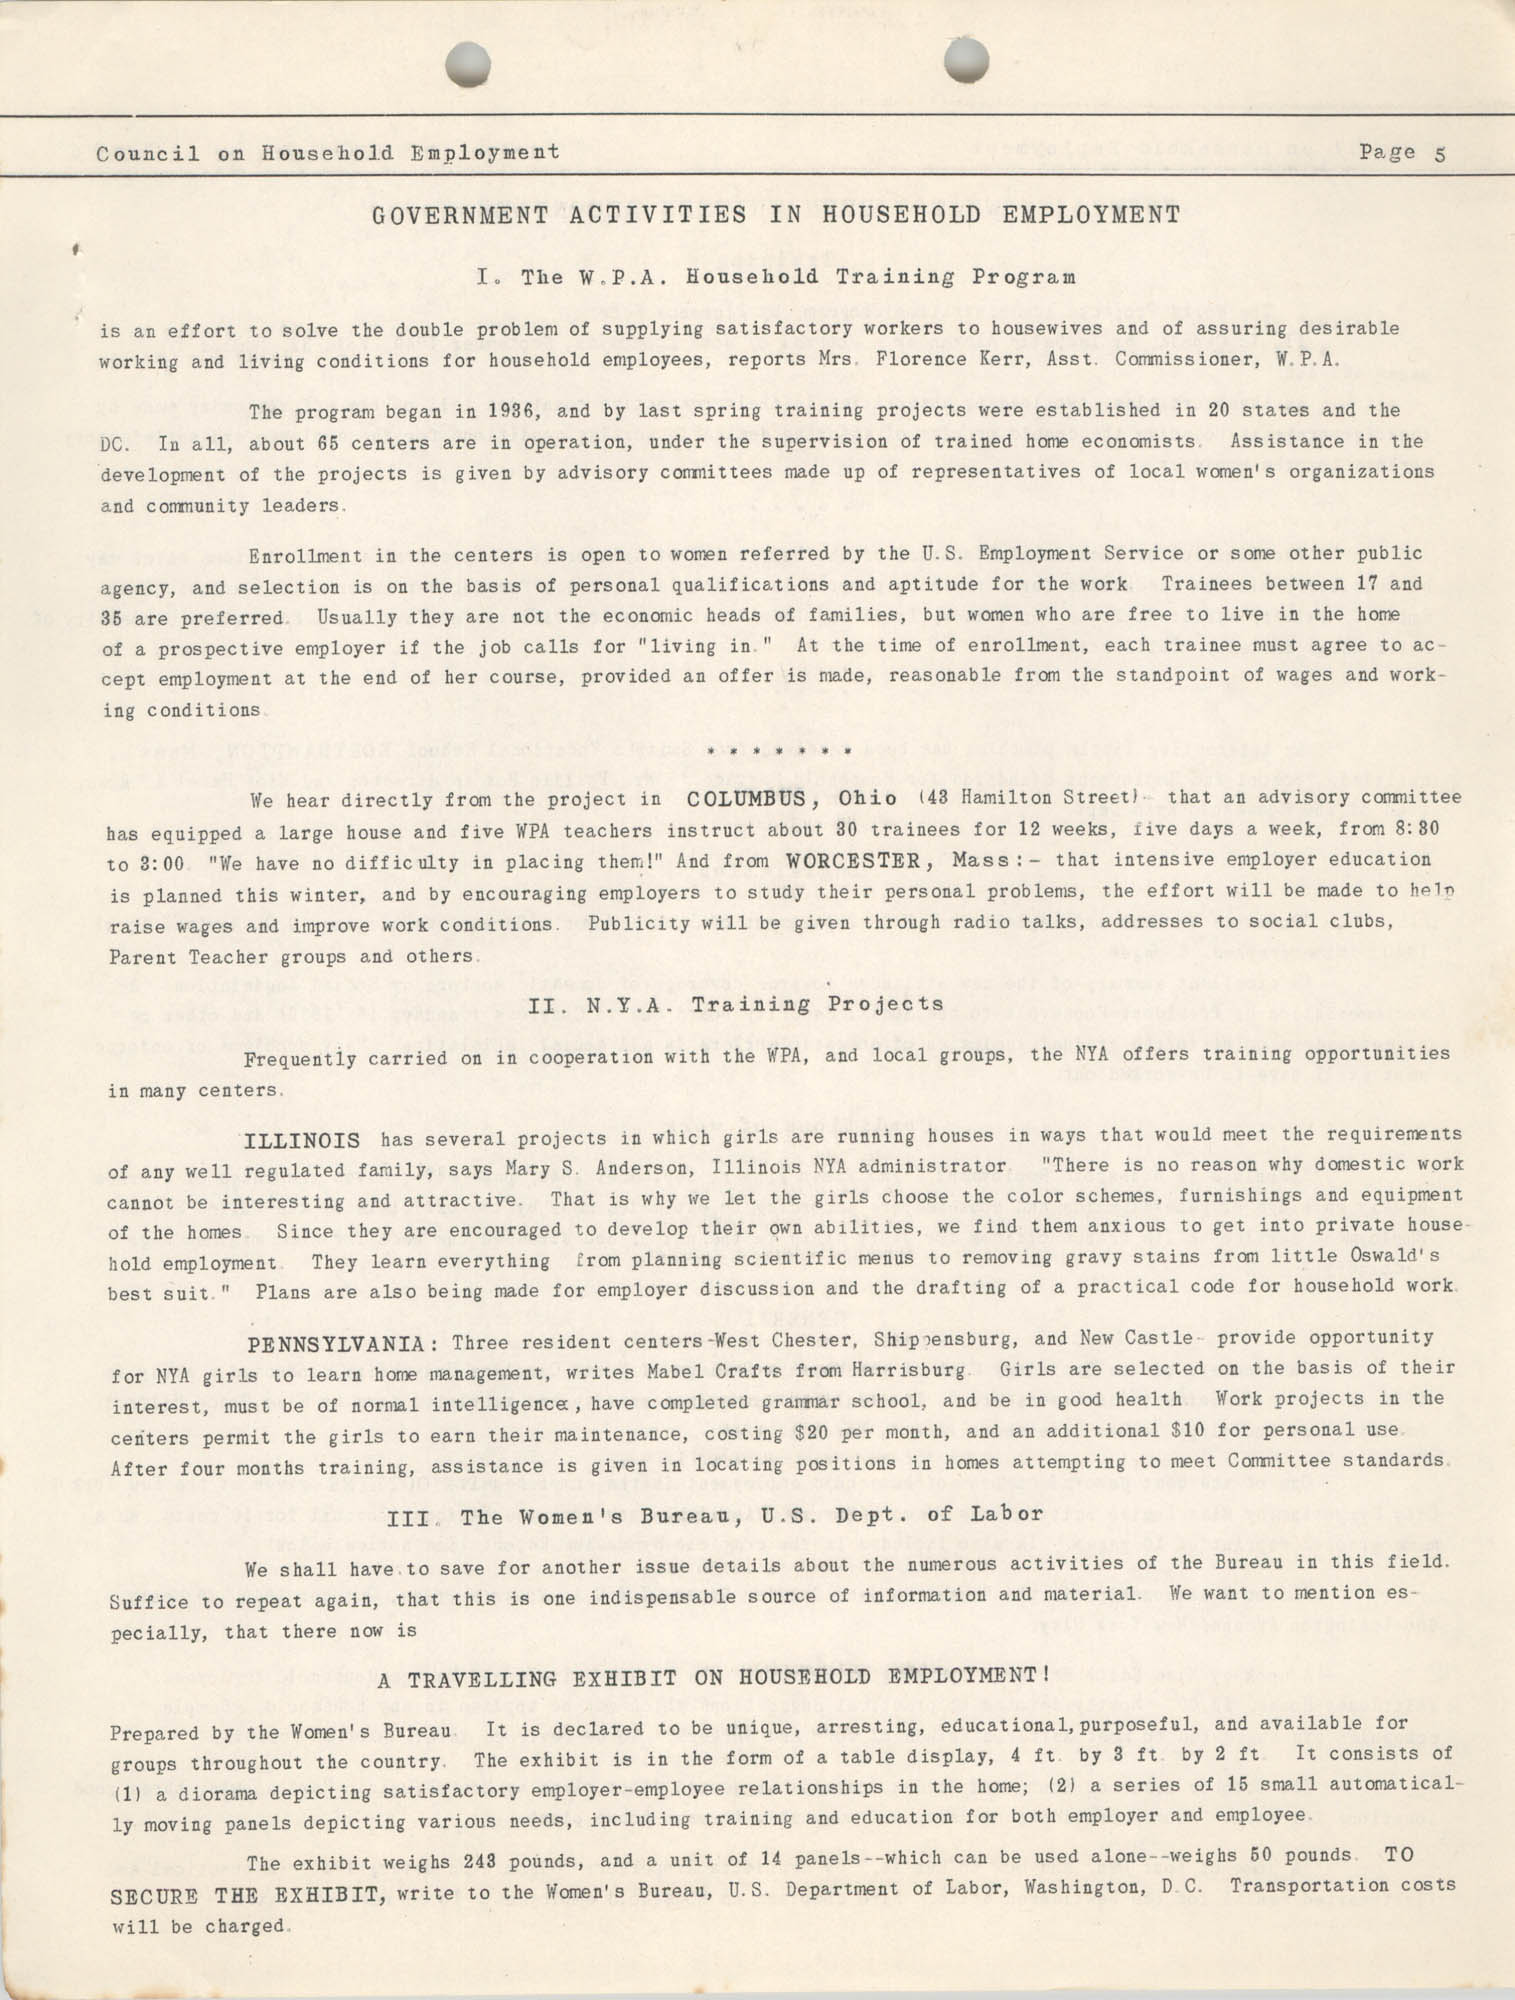 Bulletin of the National Council on Household Employment, Series II, No. 1, December 1940, Page 5